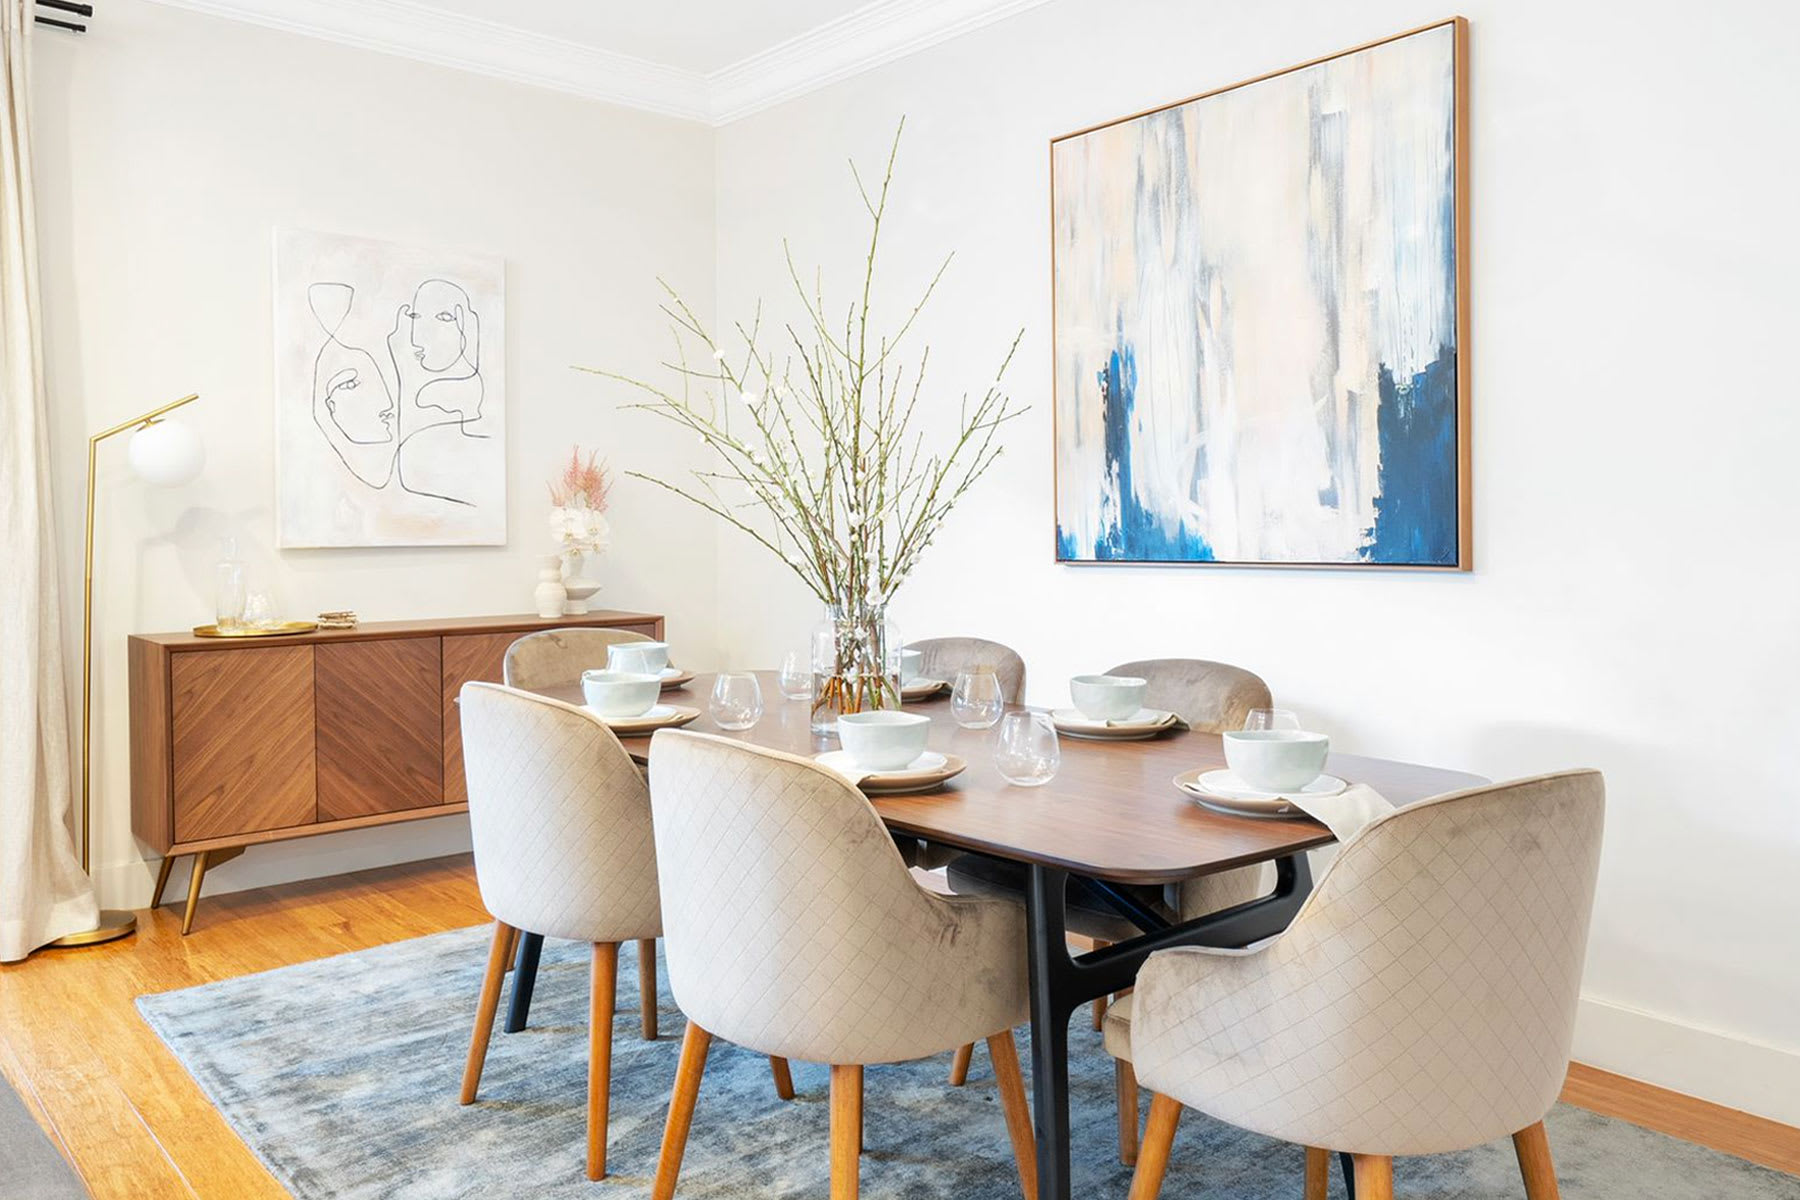 mid-century modern dining room with dining table, chairs, sideboard and lamp